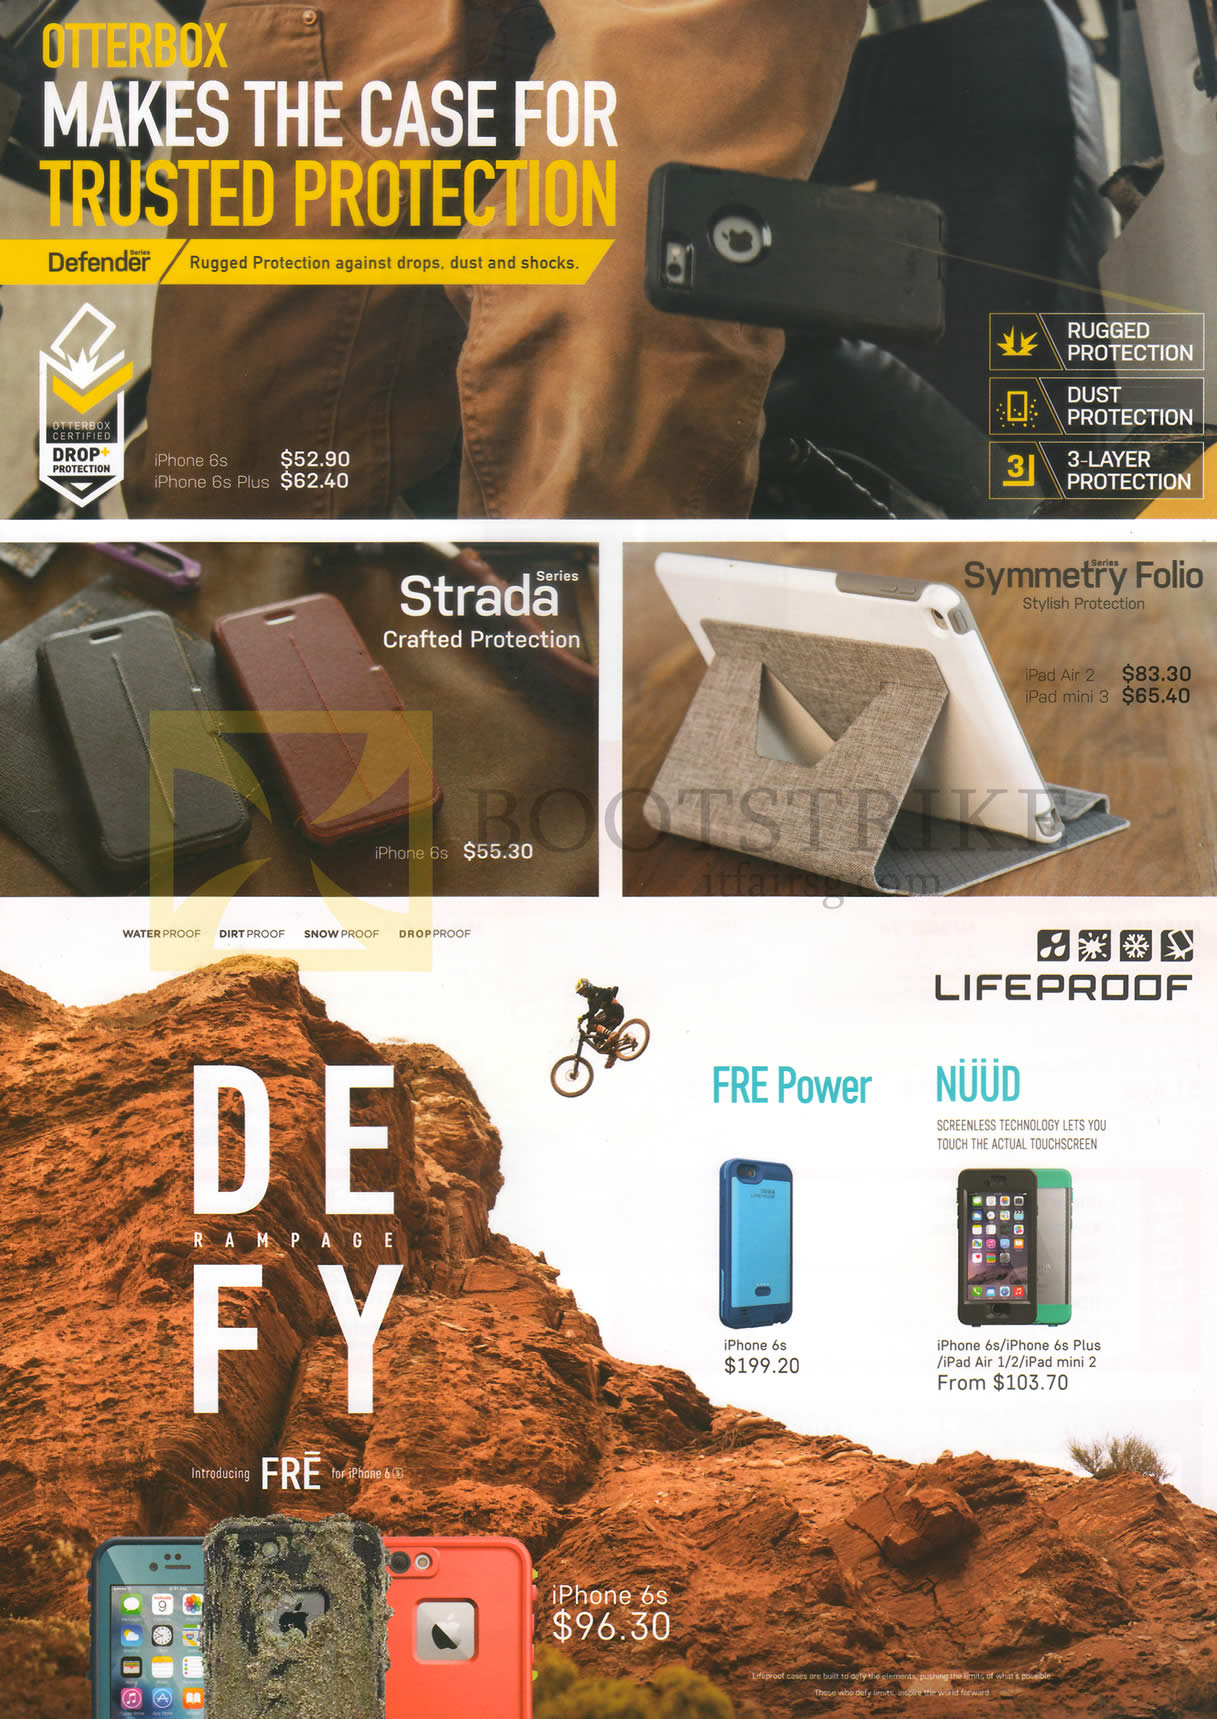 SITEX 2015 price list image brochure of Best Denki Otterbox Defender, Strada Series Protection Cover, Symmetry Folio, Lifeproof Defy Rampage, FRE Power, Nuud